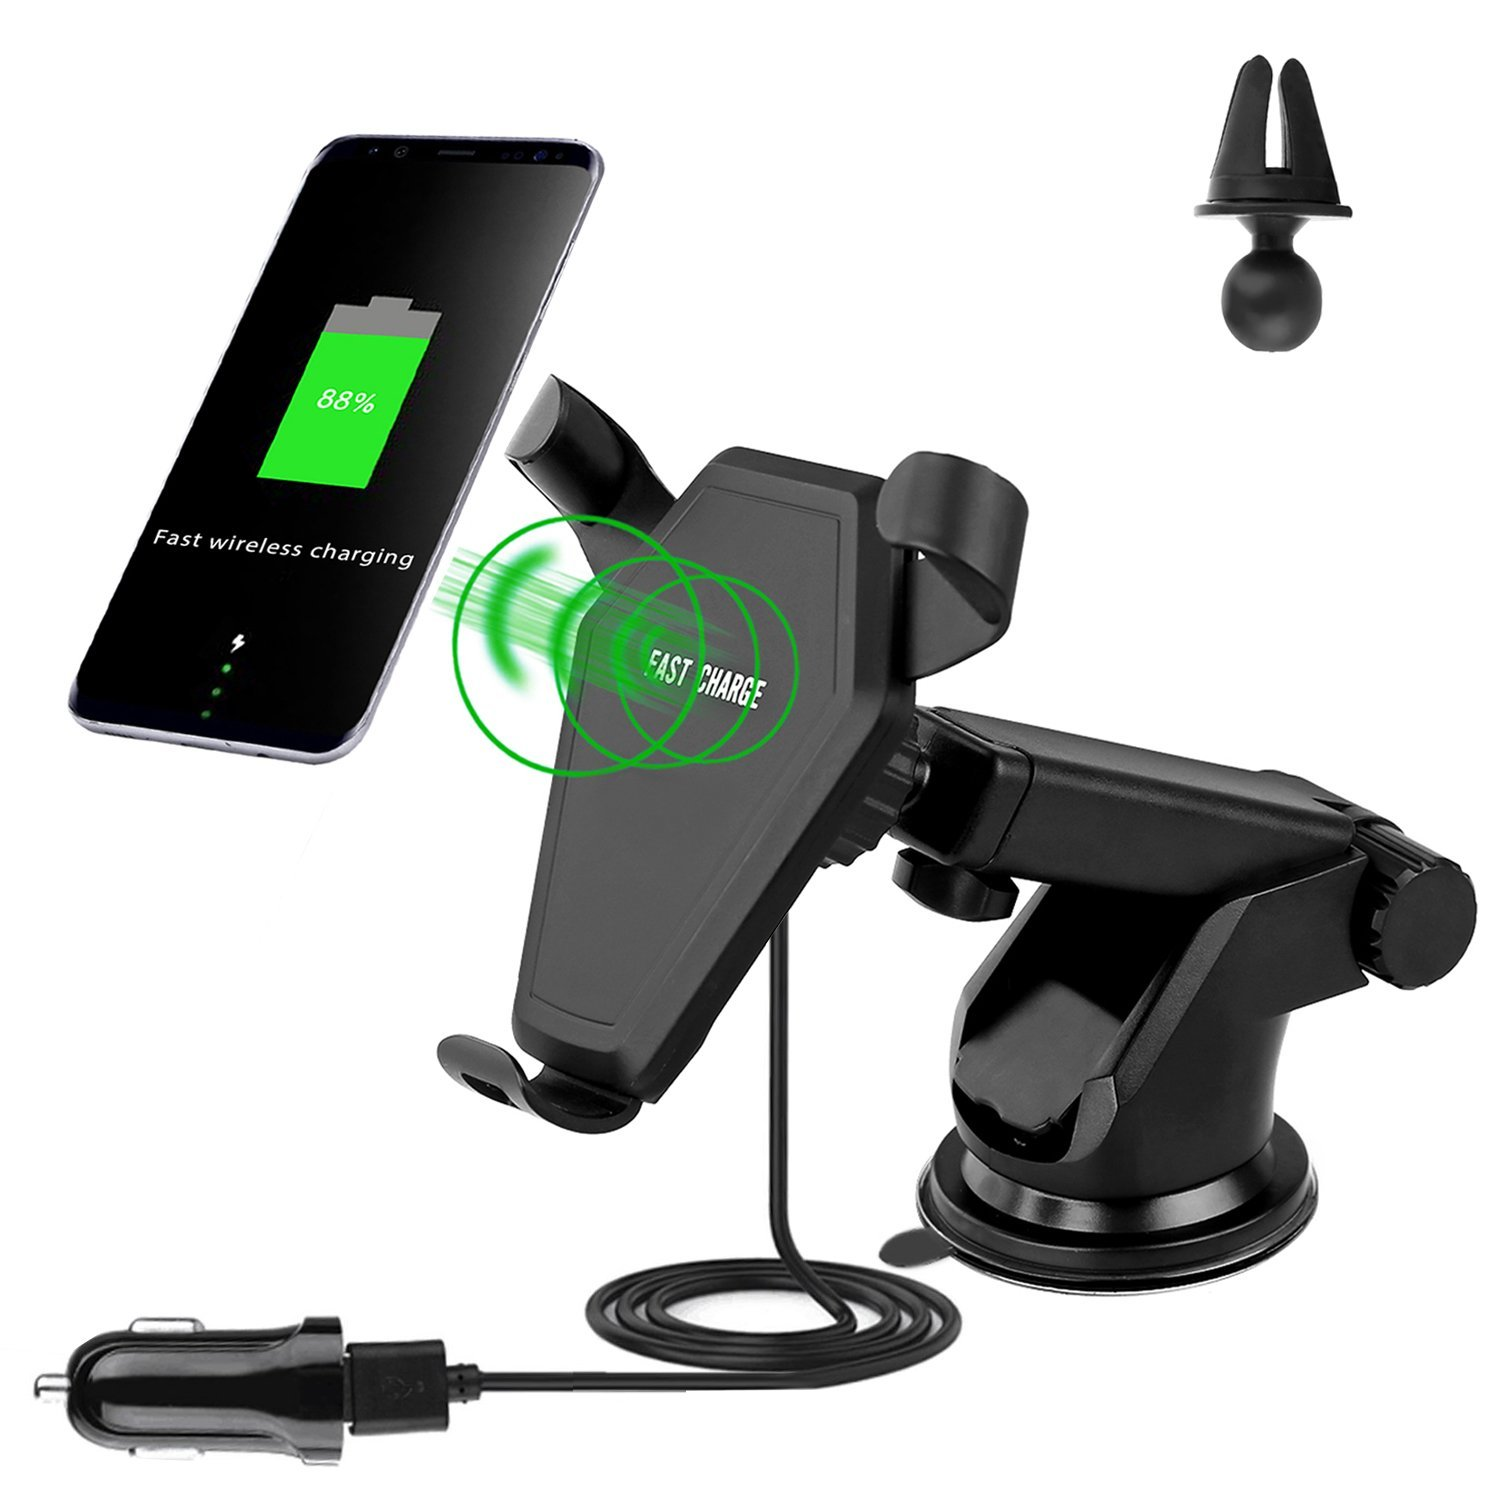 qi universally compatible wireless car charger for iphone and android tanga. Black Bedroom Furniture Sets. Home Design Ideas